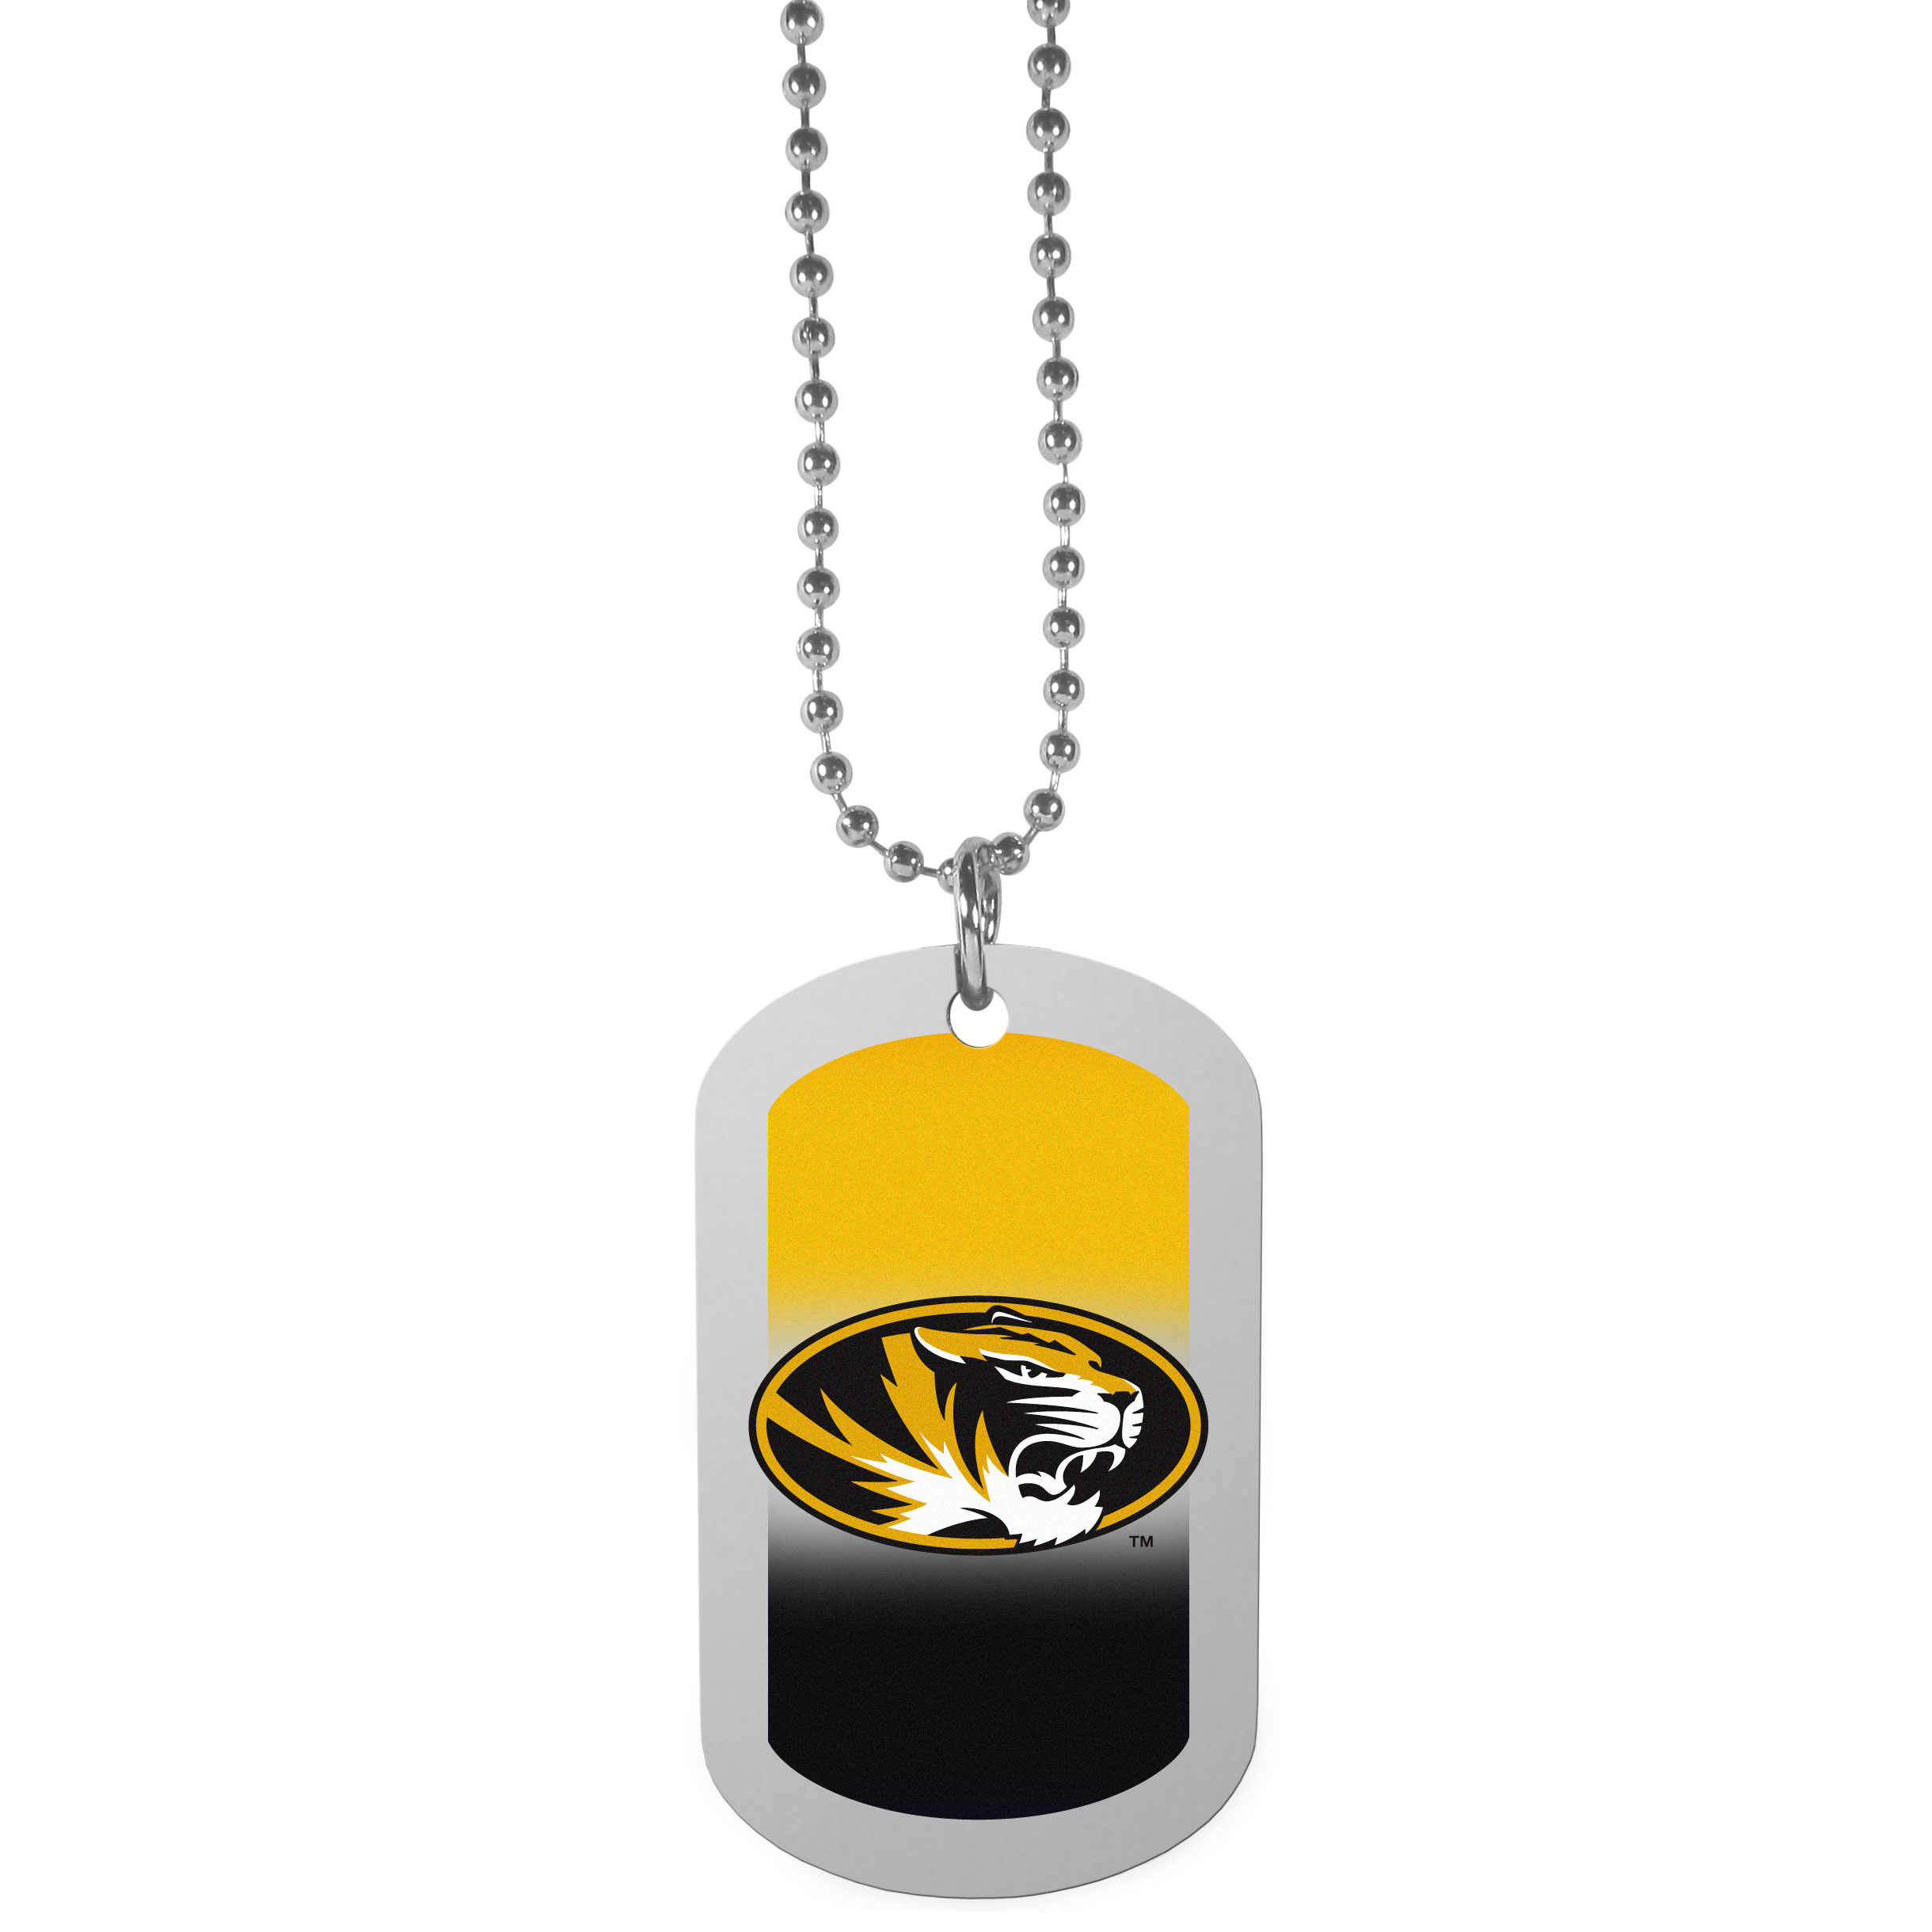 Missouri Tigers Team Tag Necklace - Dog tag necklaces are a fashion statement that is here to stay. The sporty version of the classic tag features a gradient print in team colors featuring a full color team logo over a high polish tag to create a bold and sporty look. The tag comes on a 26 inch ball chain with a ball and joint clasp. Any Missouri Tigers would be proud to wear this attractive fashion accessory.